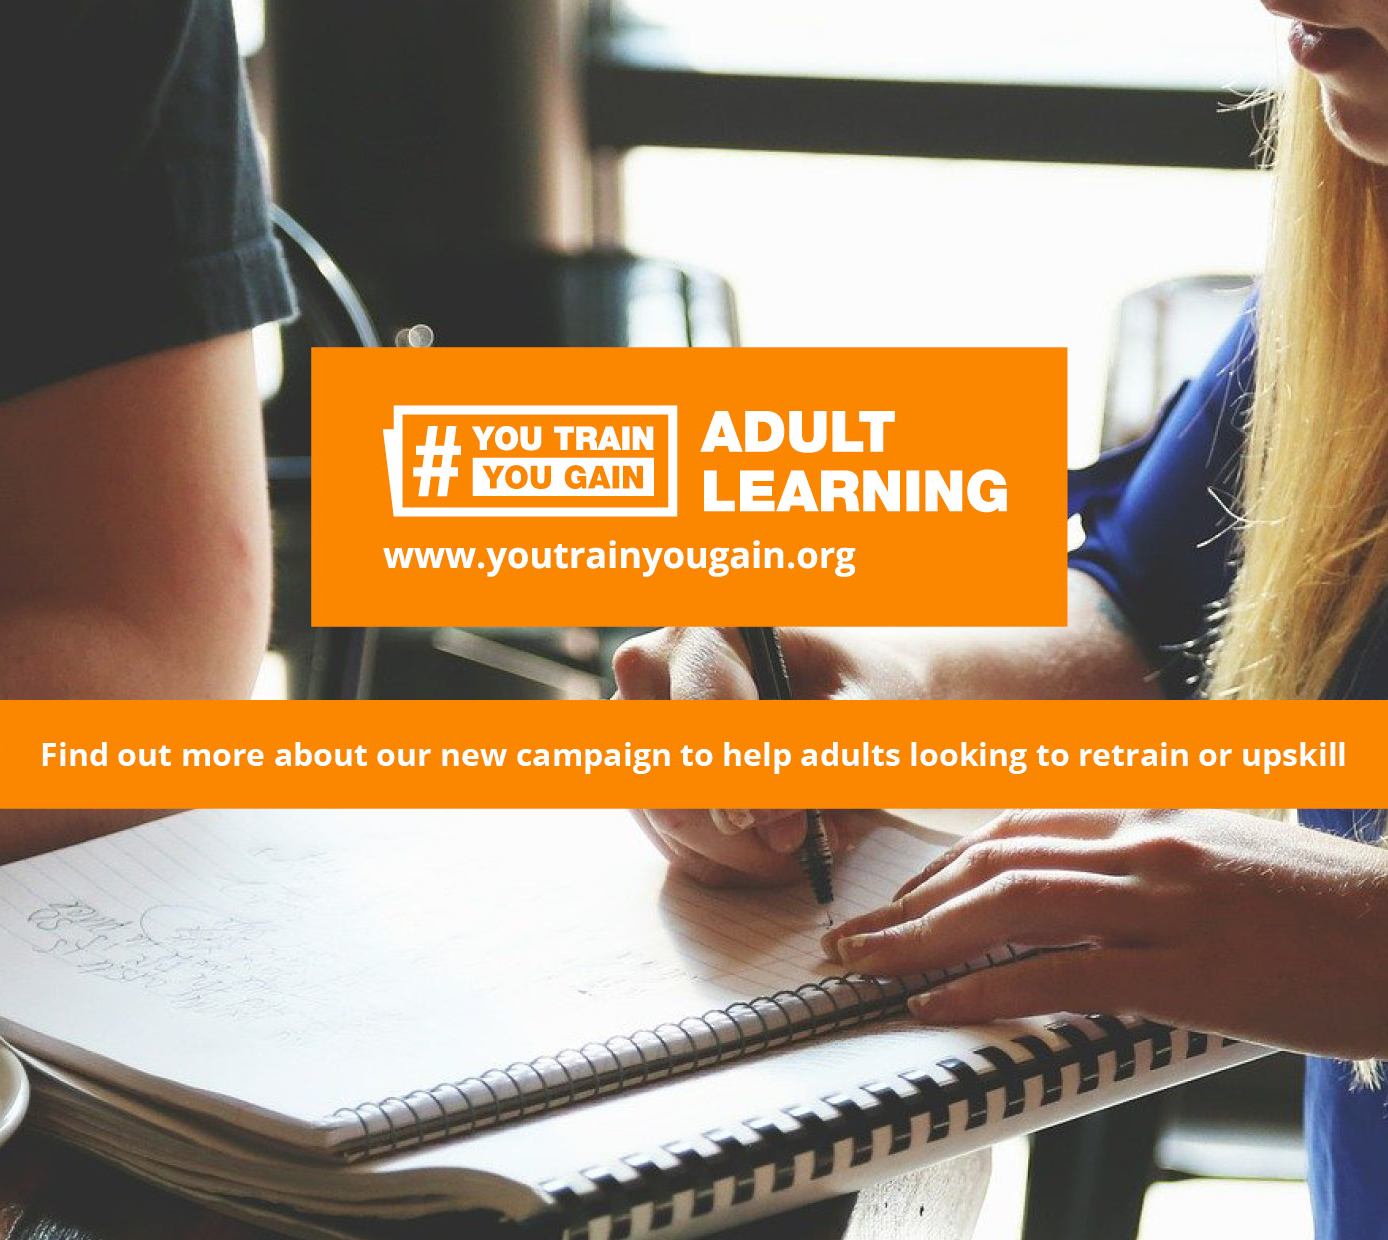 image with text saying Find out more about our new campaign to help adults looking to retrain or upskill